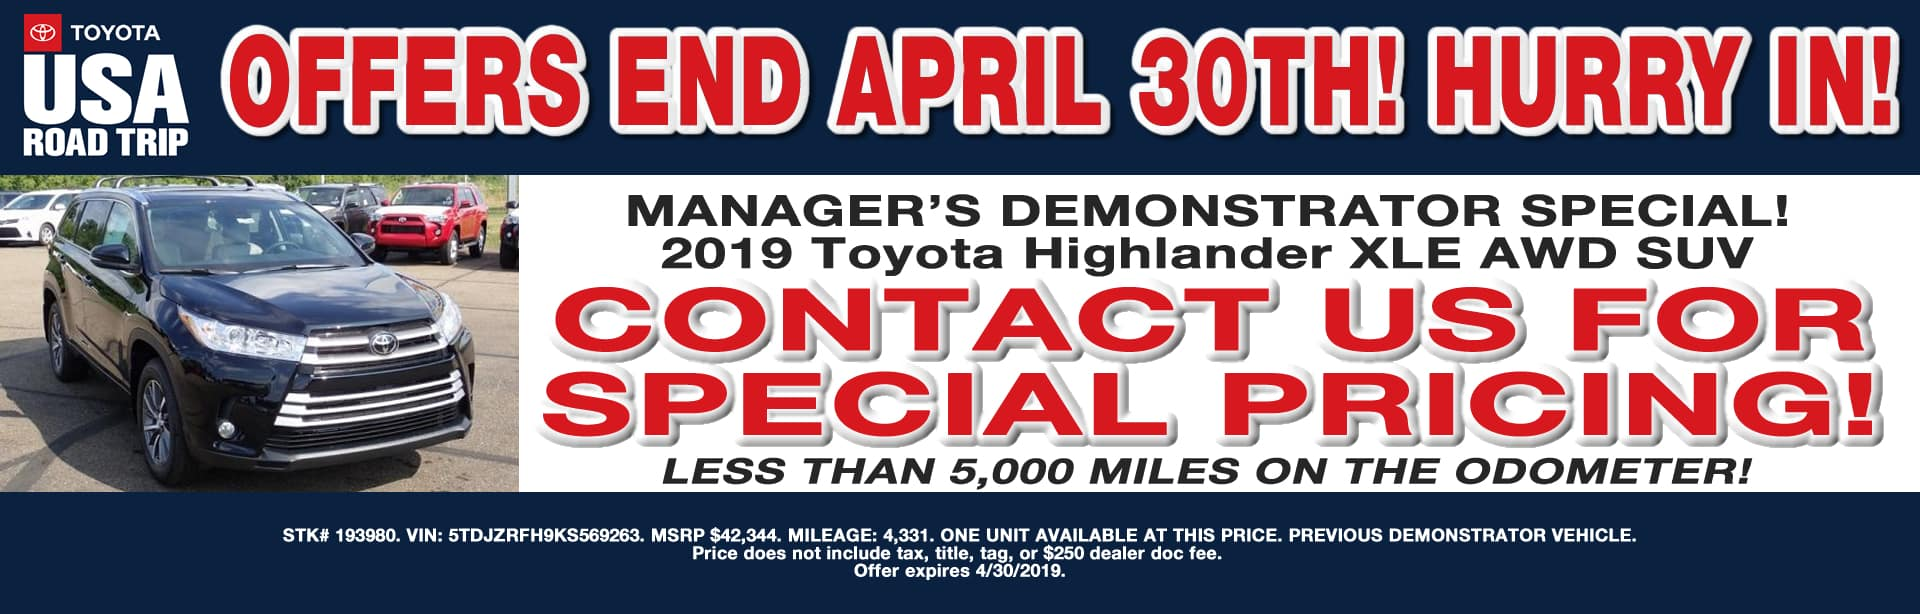 MANAGER'S HIGHLANDER DEMO SPECIAL CAIN TOYOTA NORTH CANTON OHIO